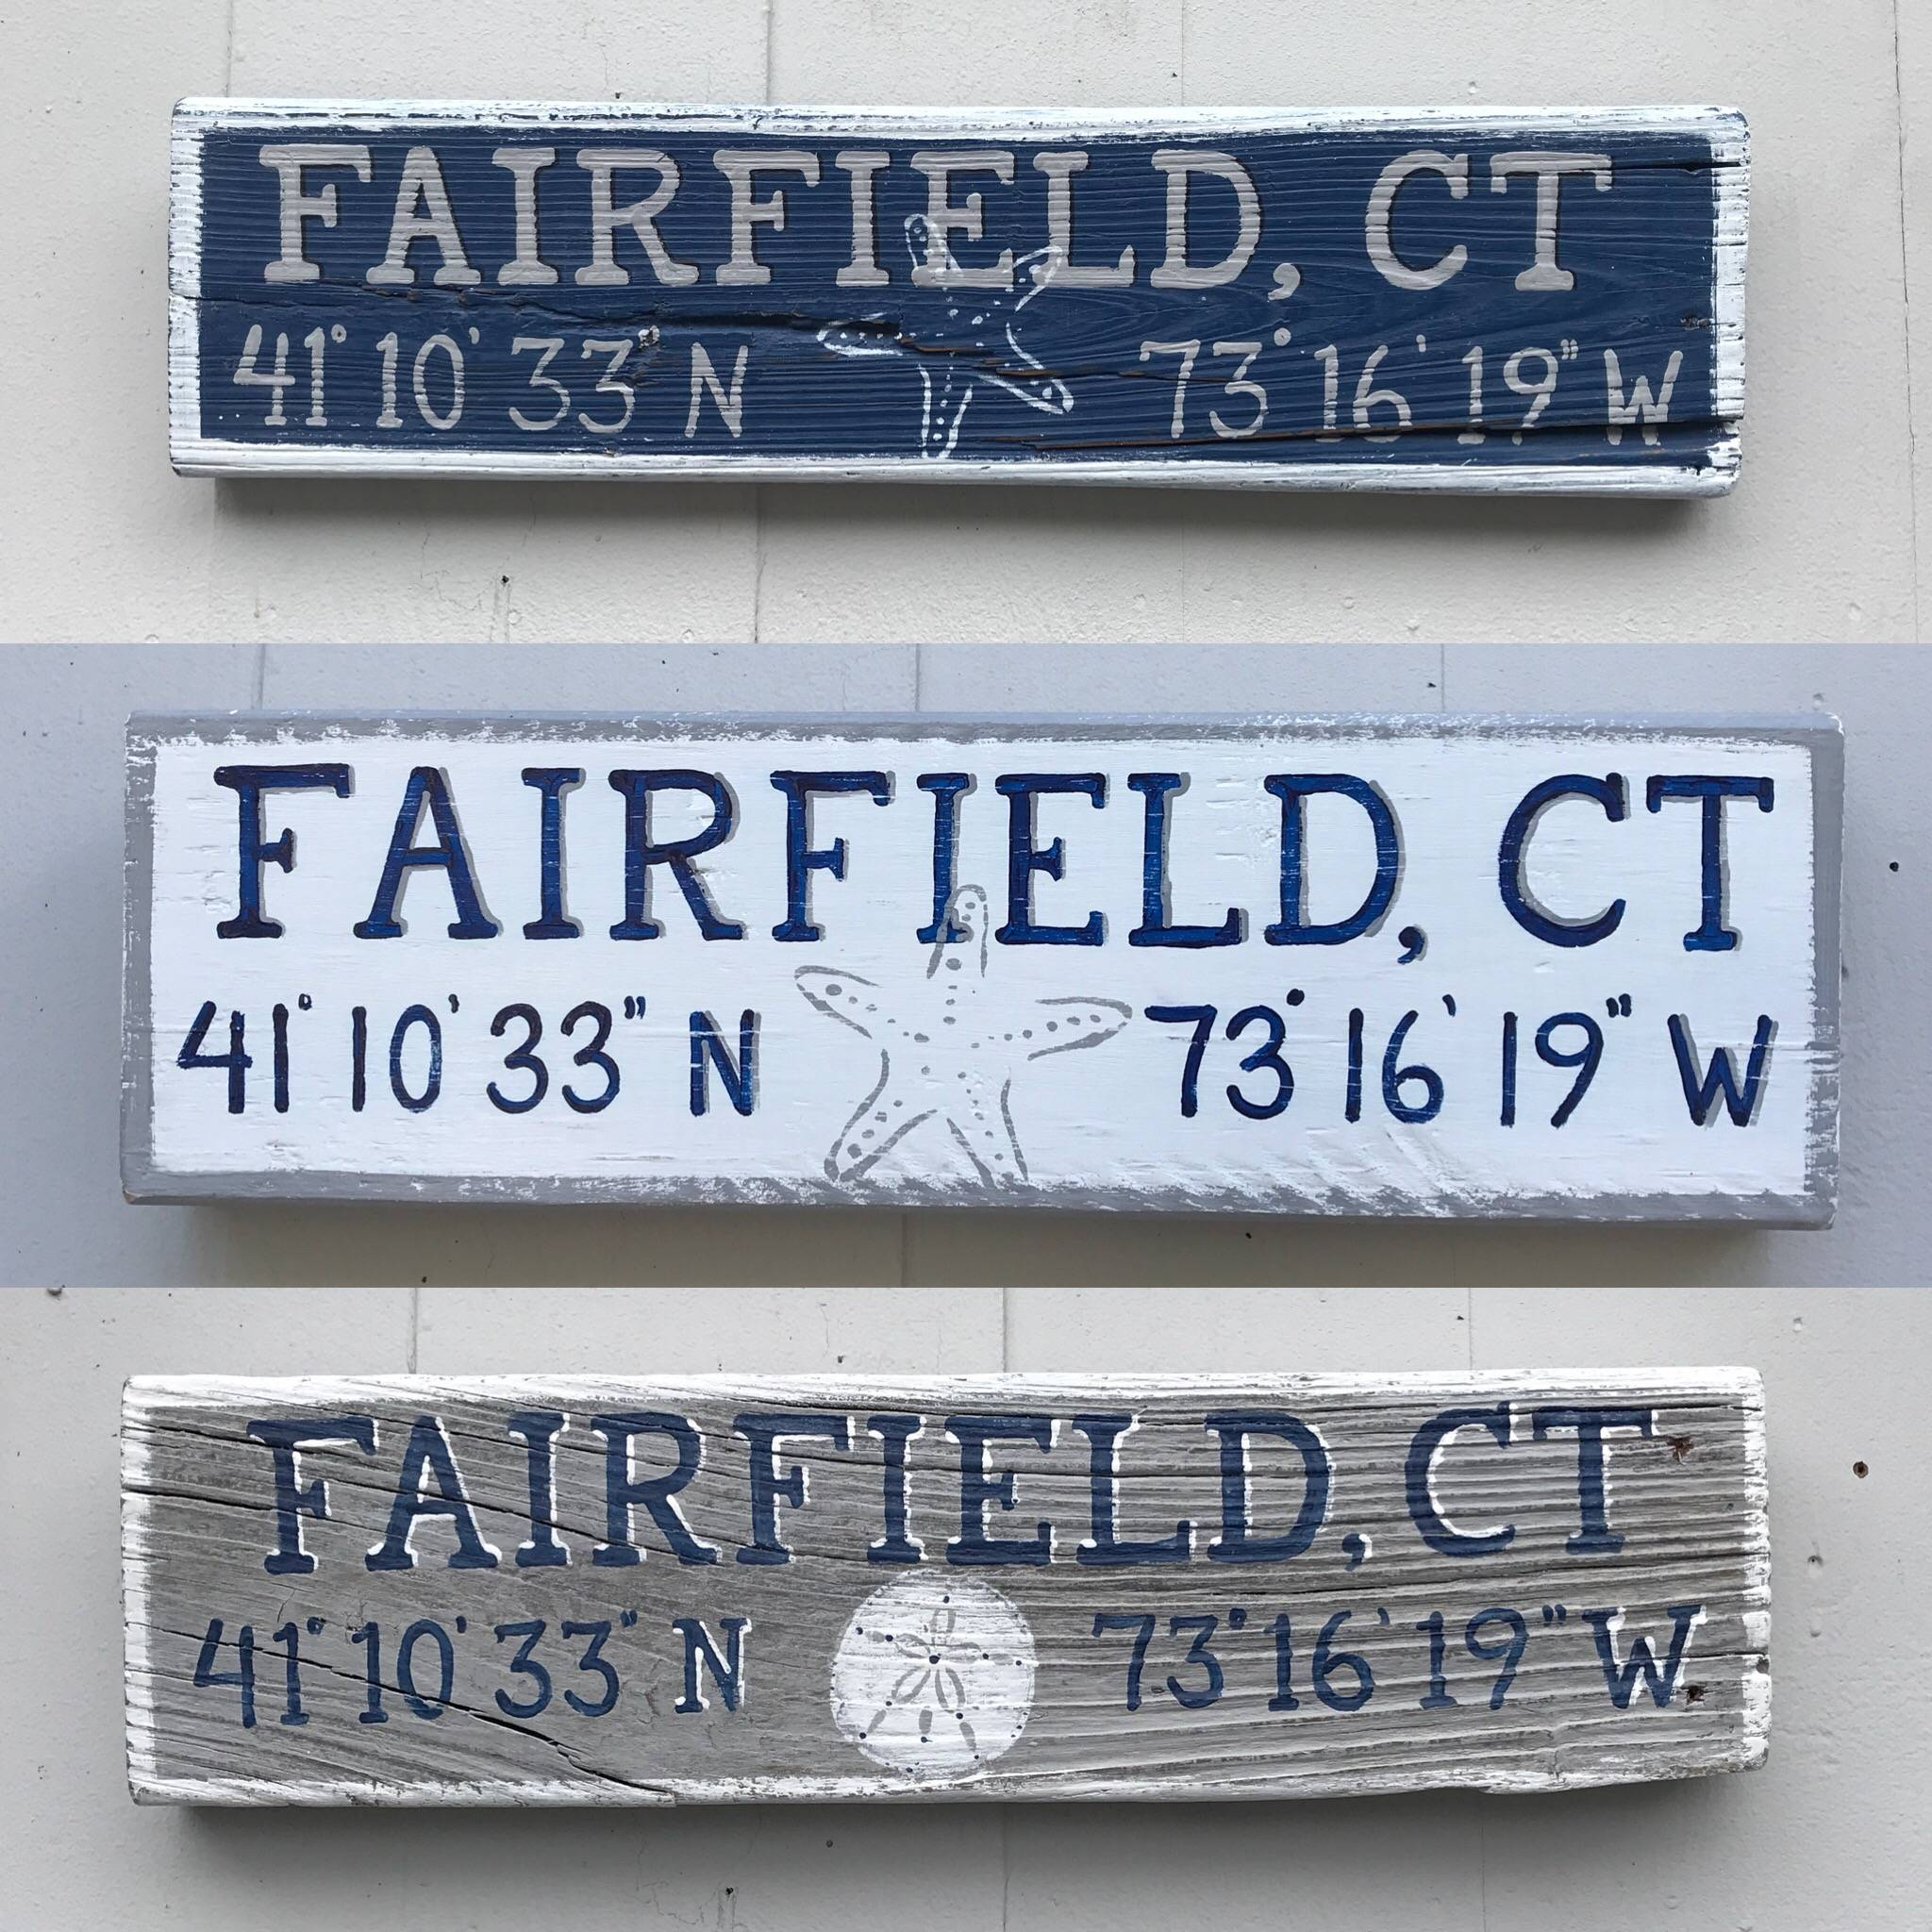 Small Fairfield, CT  signs